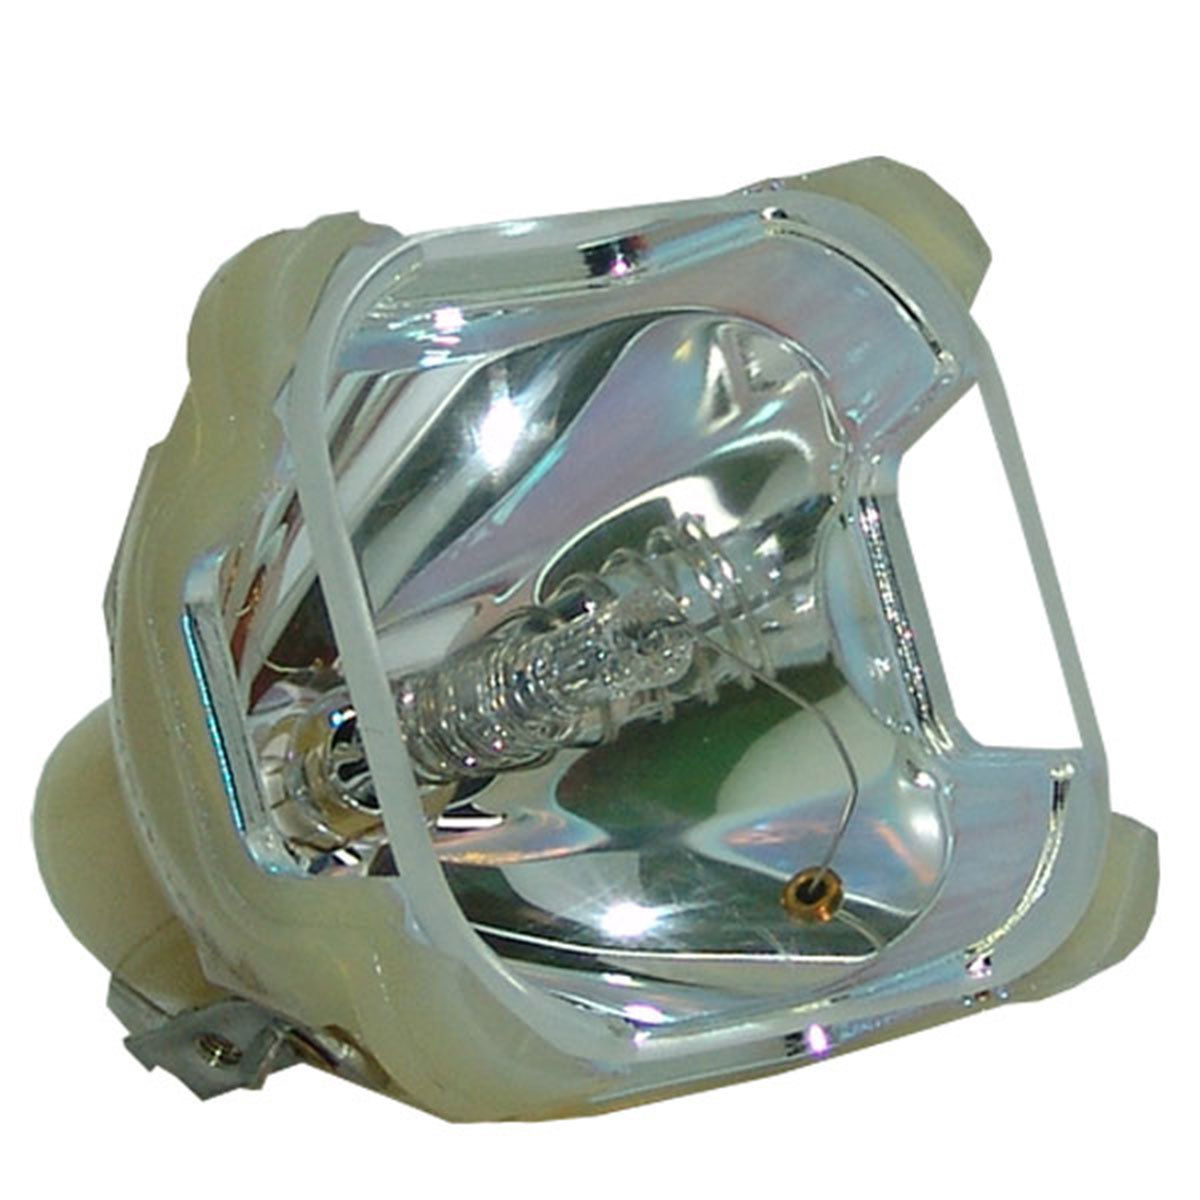 Compatible Bare Bulb TLPLW1 TLP-LW1 for TOSHIBA TLP-S200 TLP-S201 TLP-T600 TLP-T601 Projector Bulb without housing free shipping tlplw1 tlp lw1 for toshiba tlp s200 tlp 620 tlp t400 tlp t401 tlp t500 tlp t501 tlp t700 tlp t701 compatible projector lamp bulb